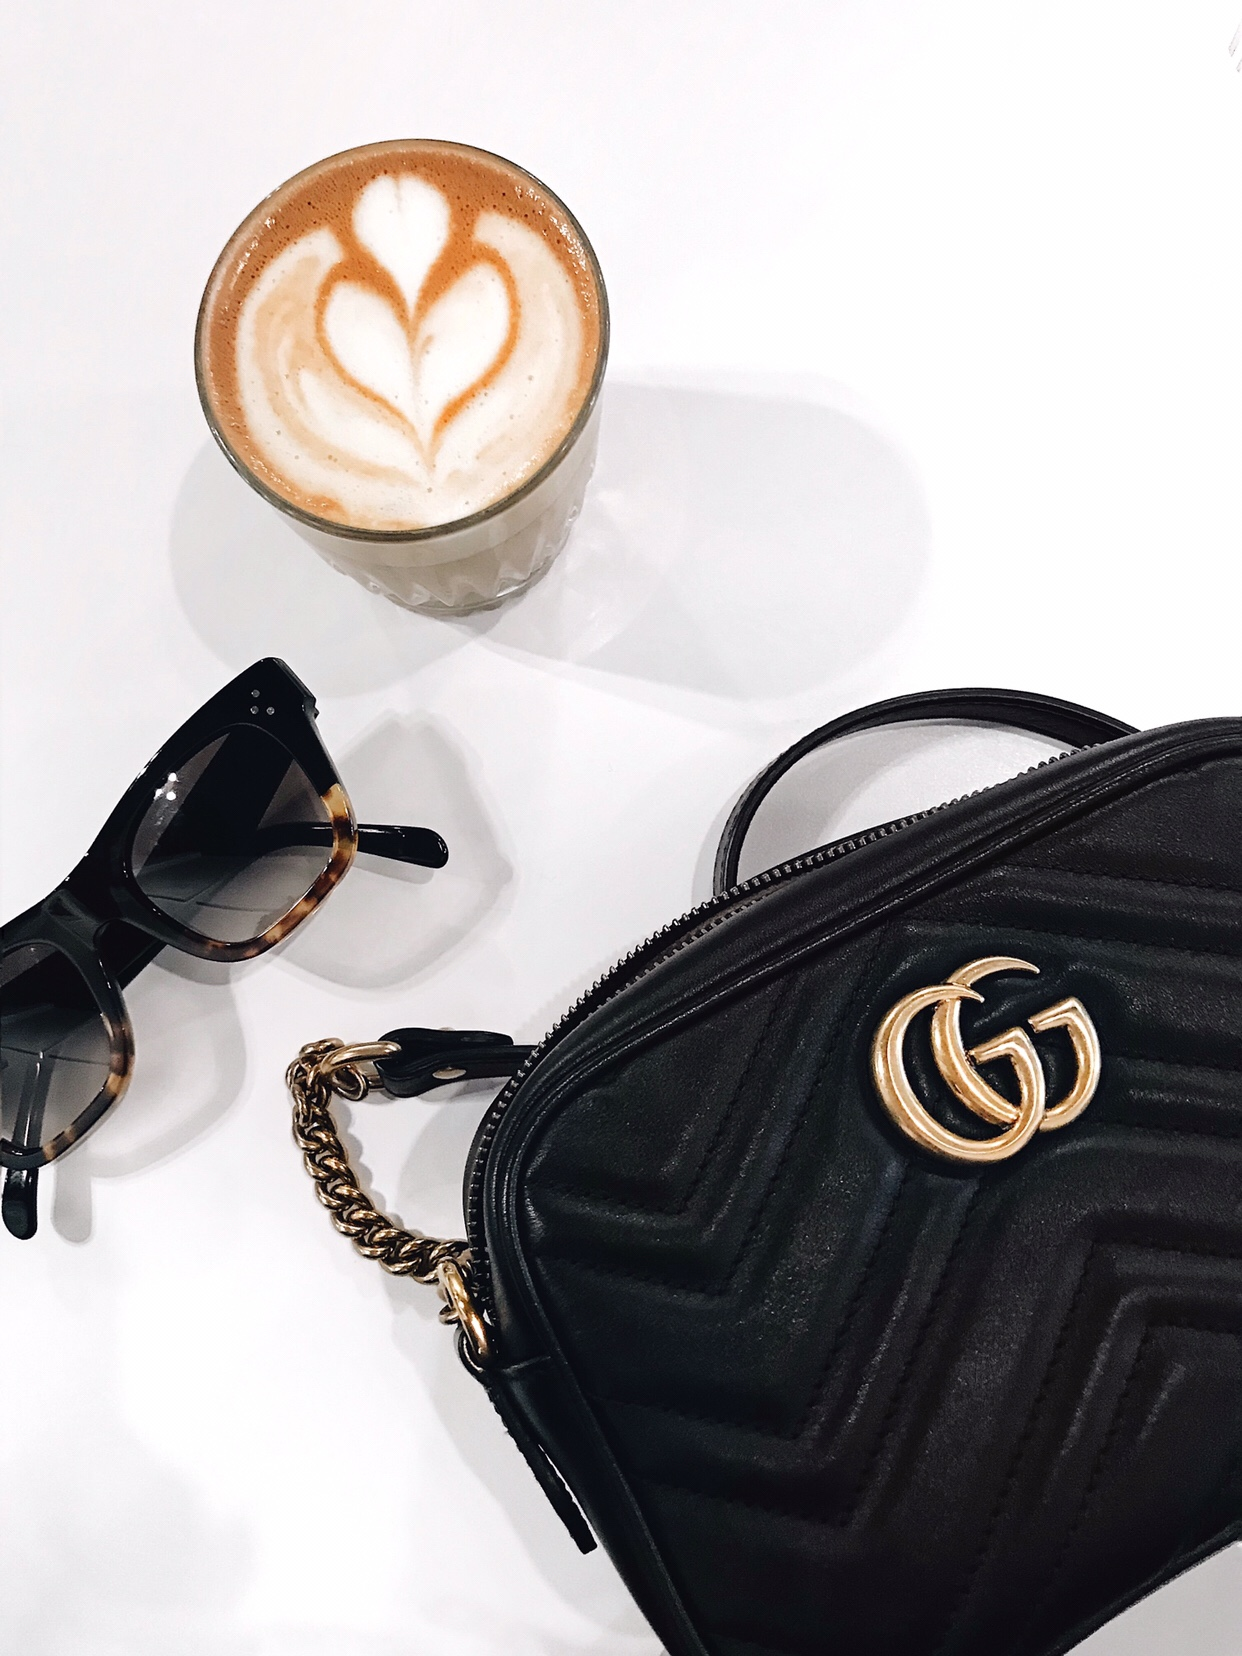 Gucci Marmont handbag and latte art | CoffeeAndHandbags.com